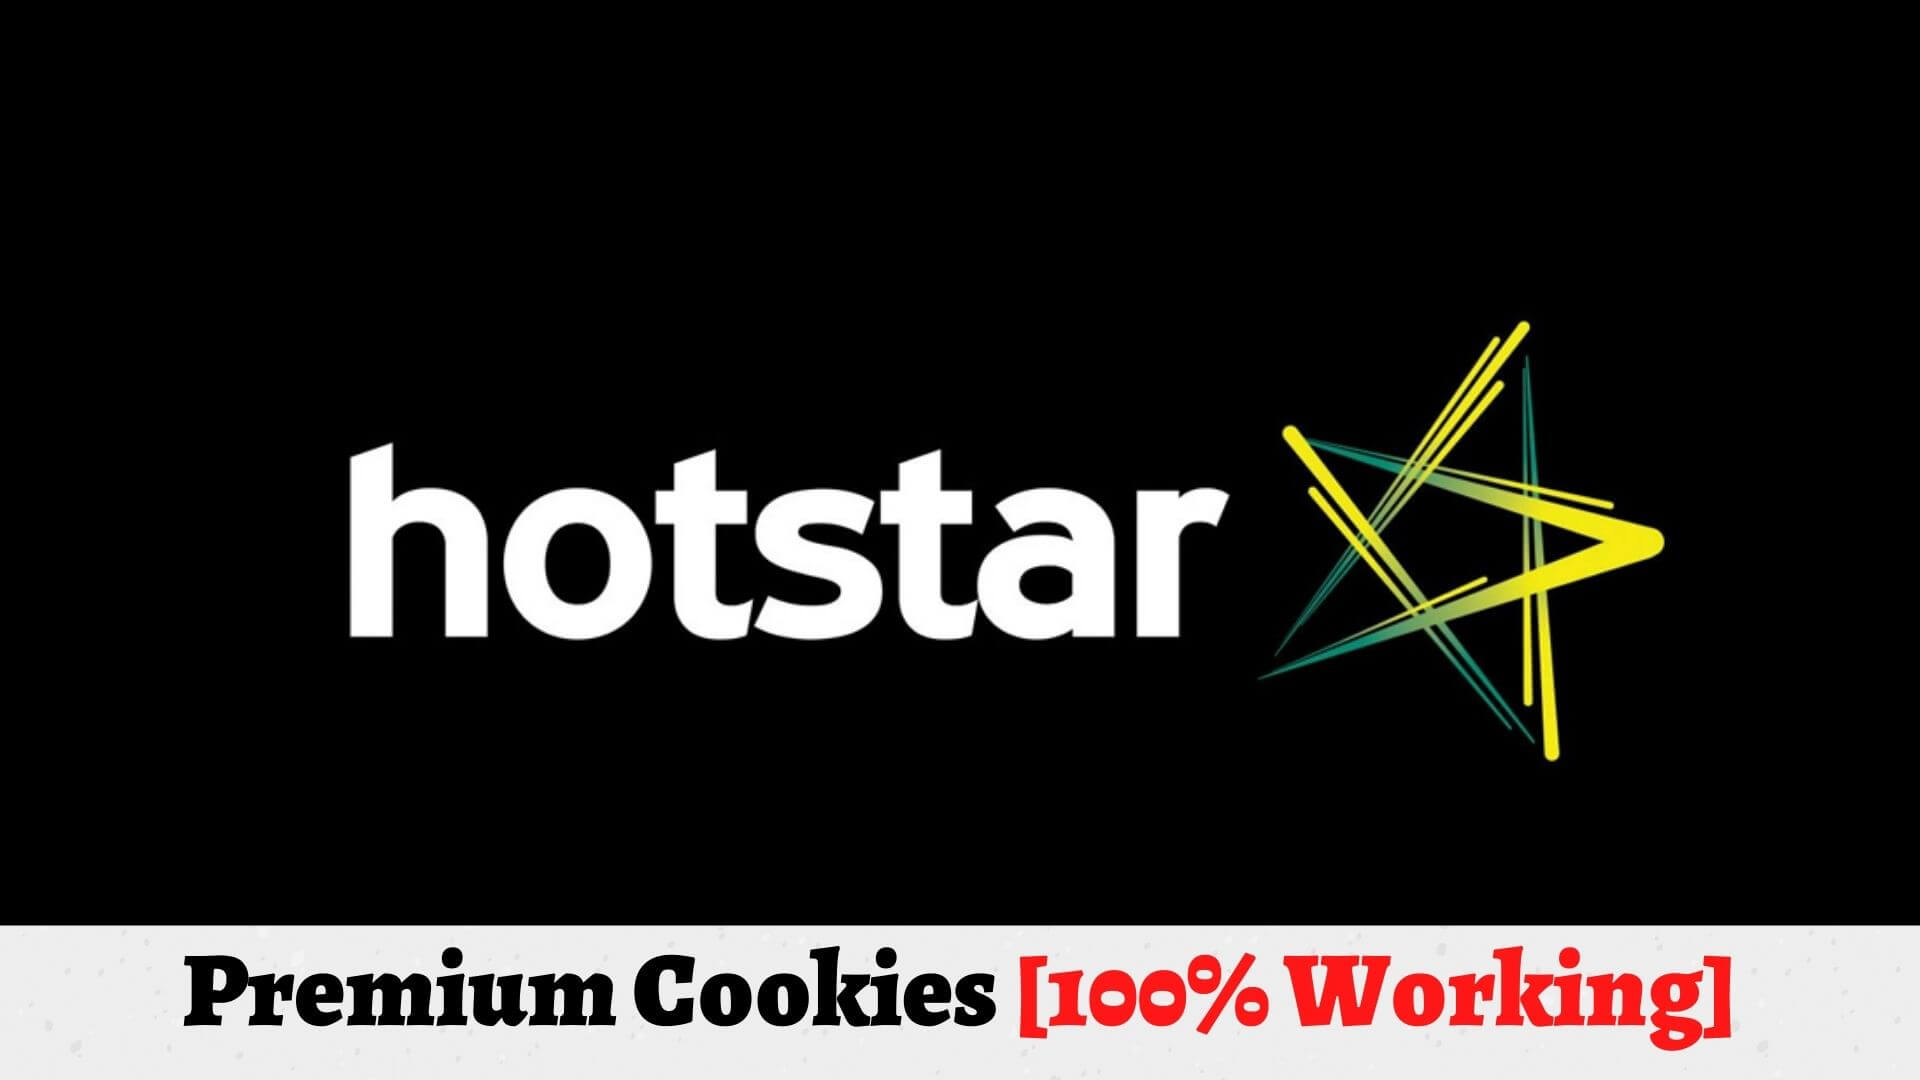 How to Get Hotstar Premium Cookies for Free